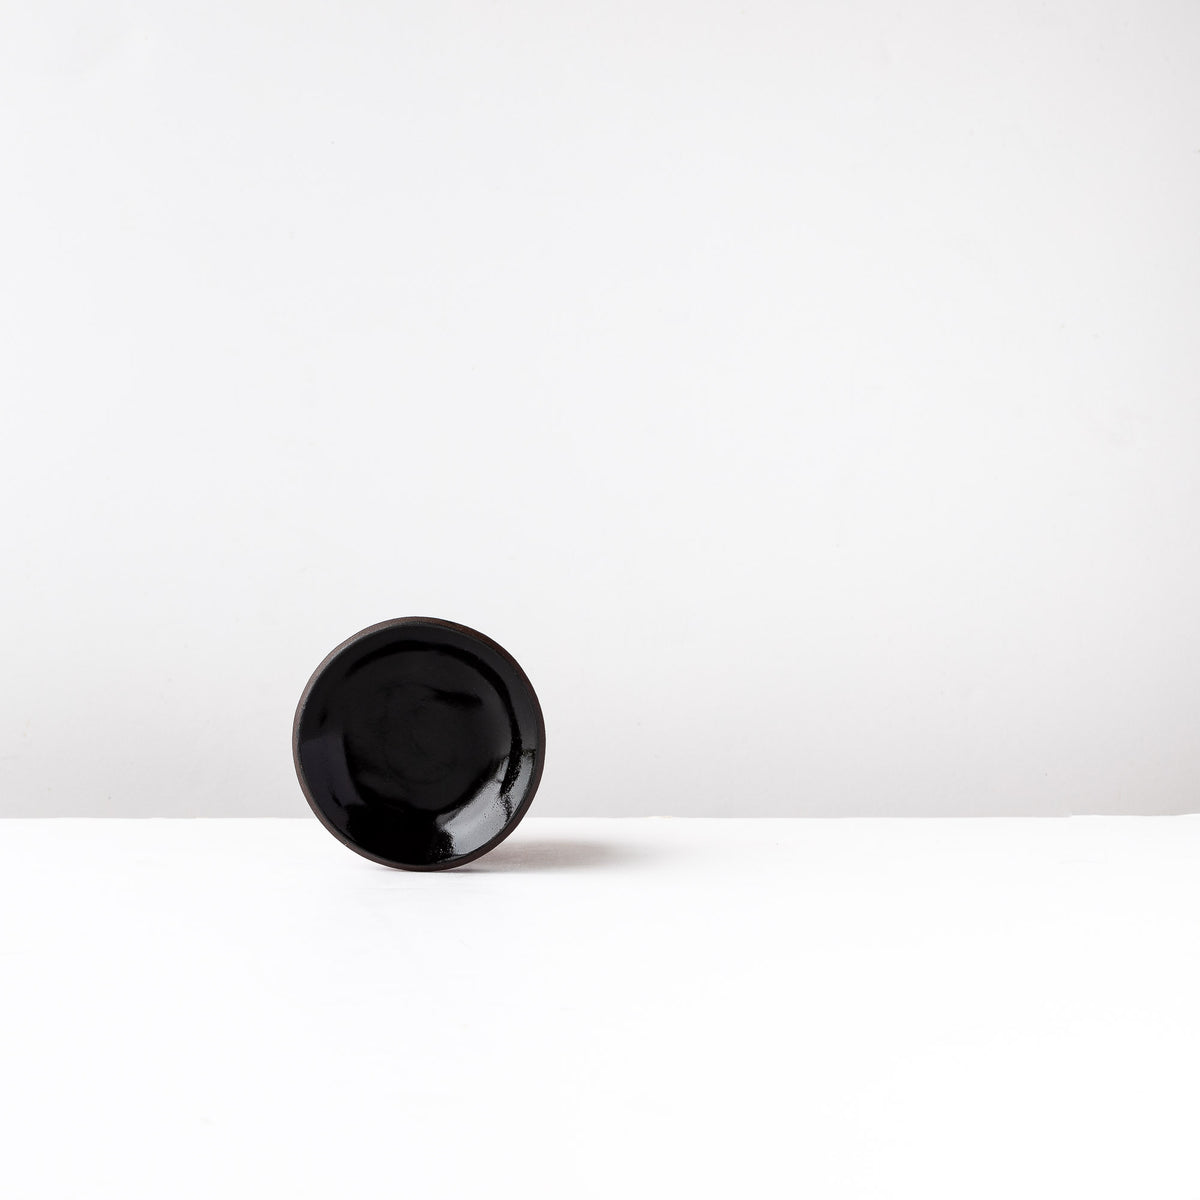 X-Small Handmade Saucer in Black Lacquered Stoneware - Sold by Chic & Basta